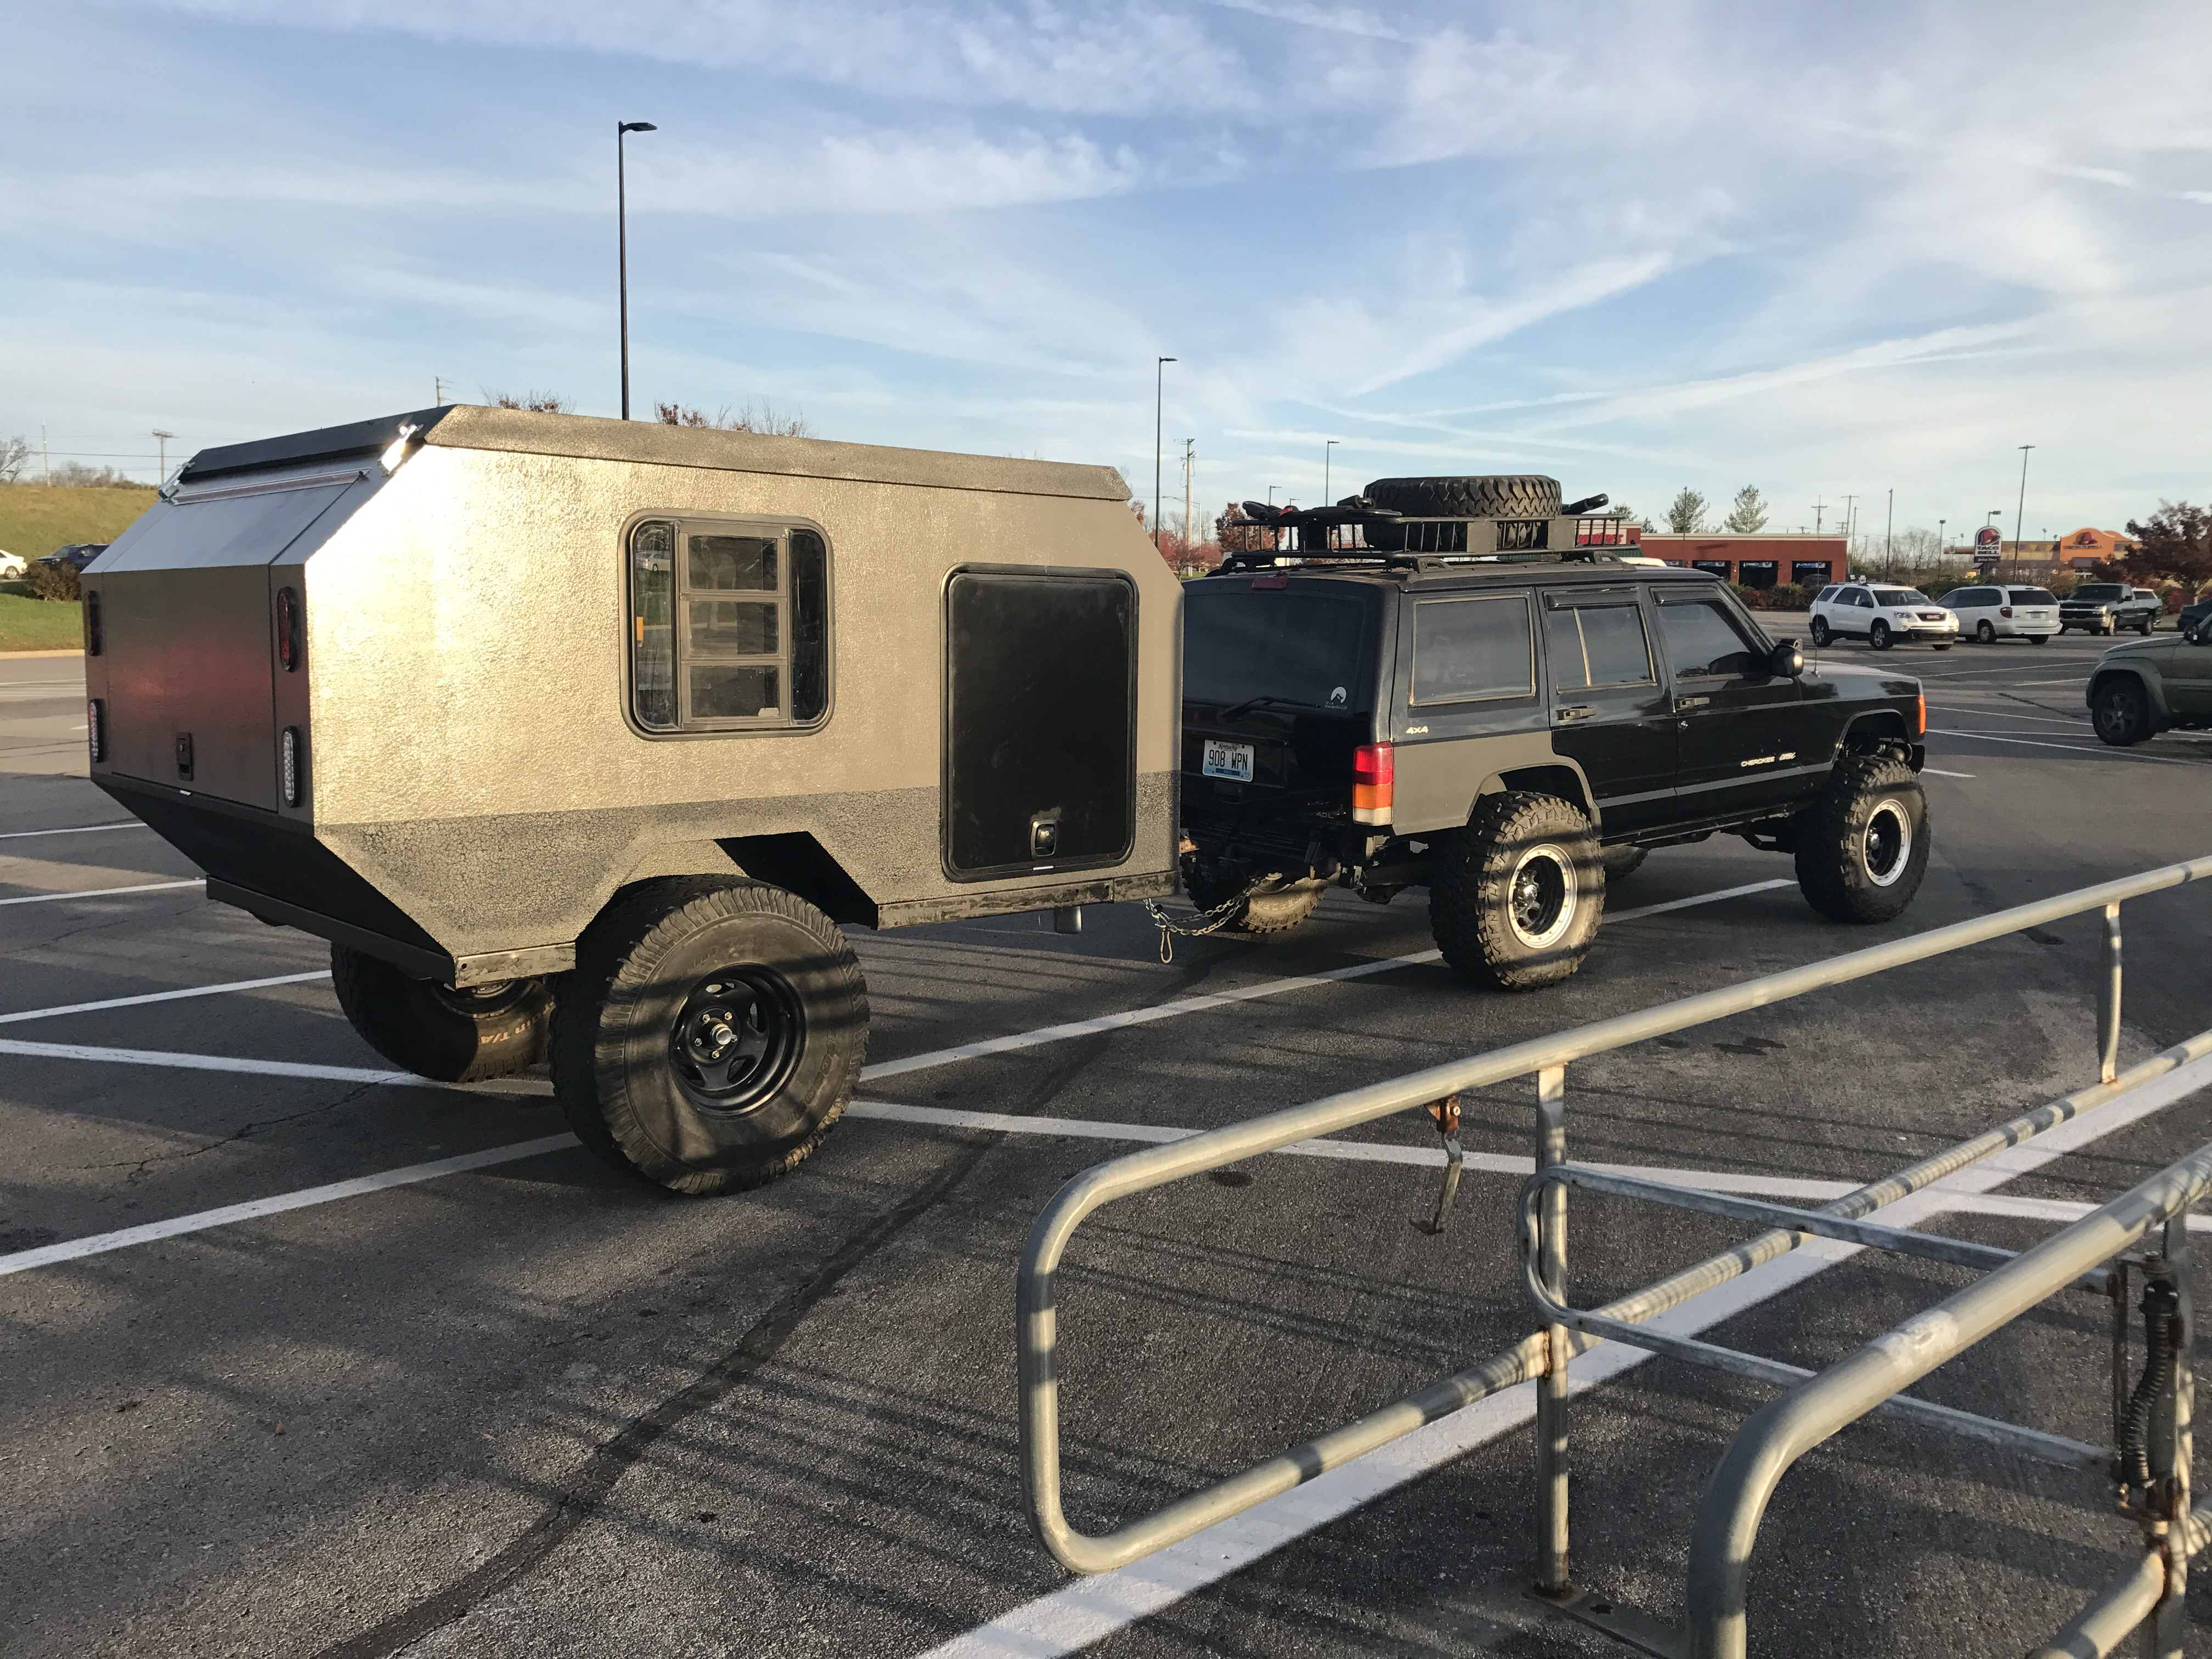 The Foxtail is a Teardrop Camper on Steroids